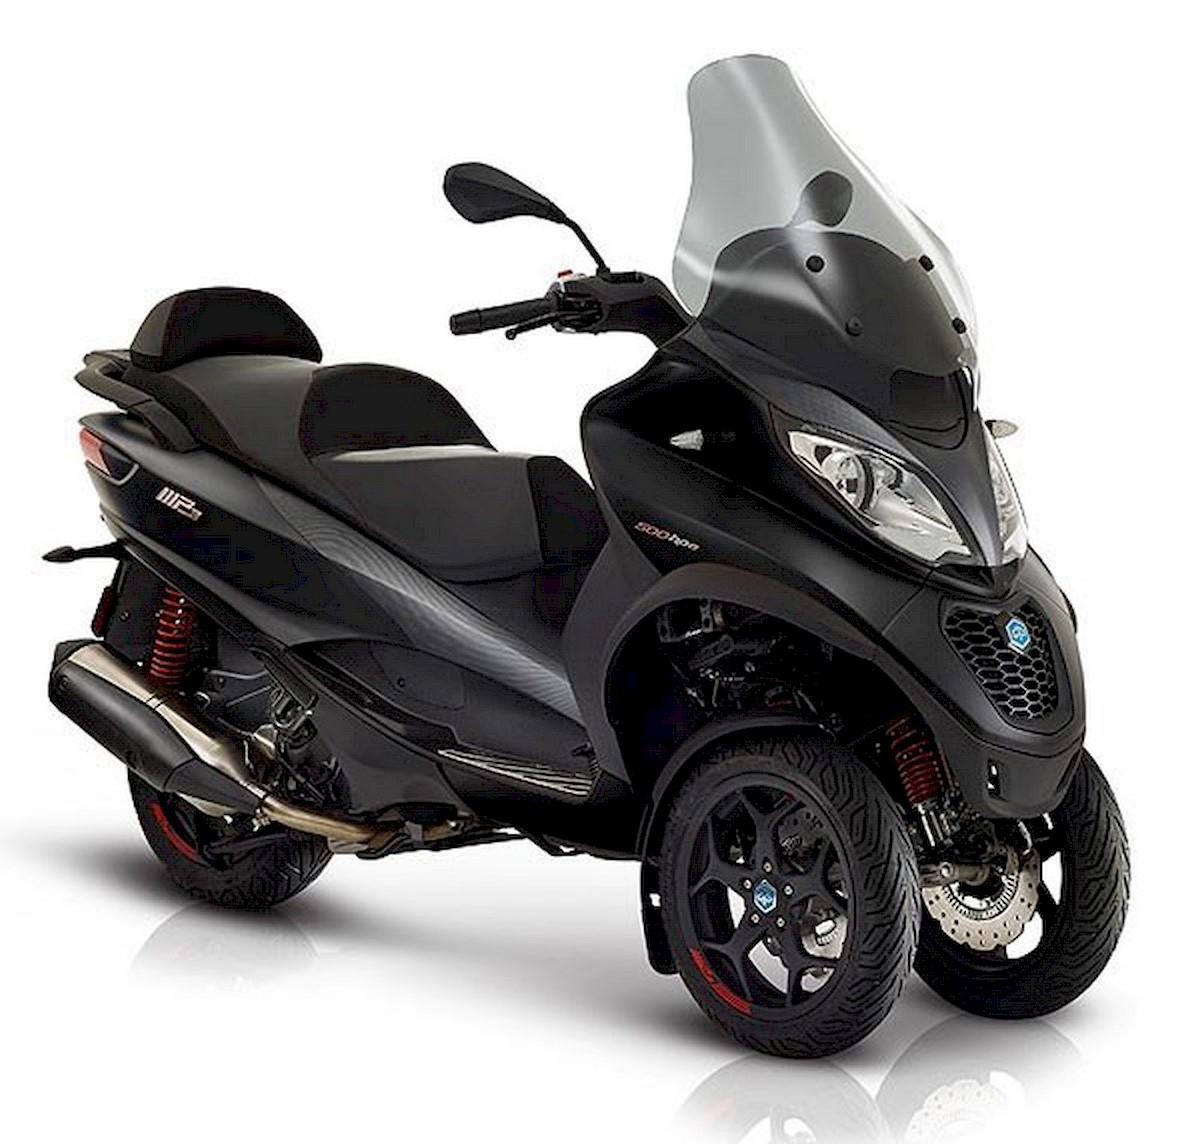 Image of PIAGGIO MP3 SPORT 500 HPE